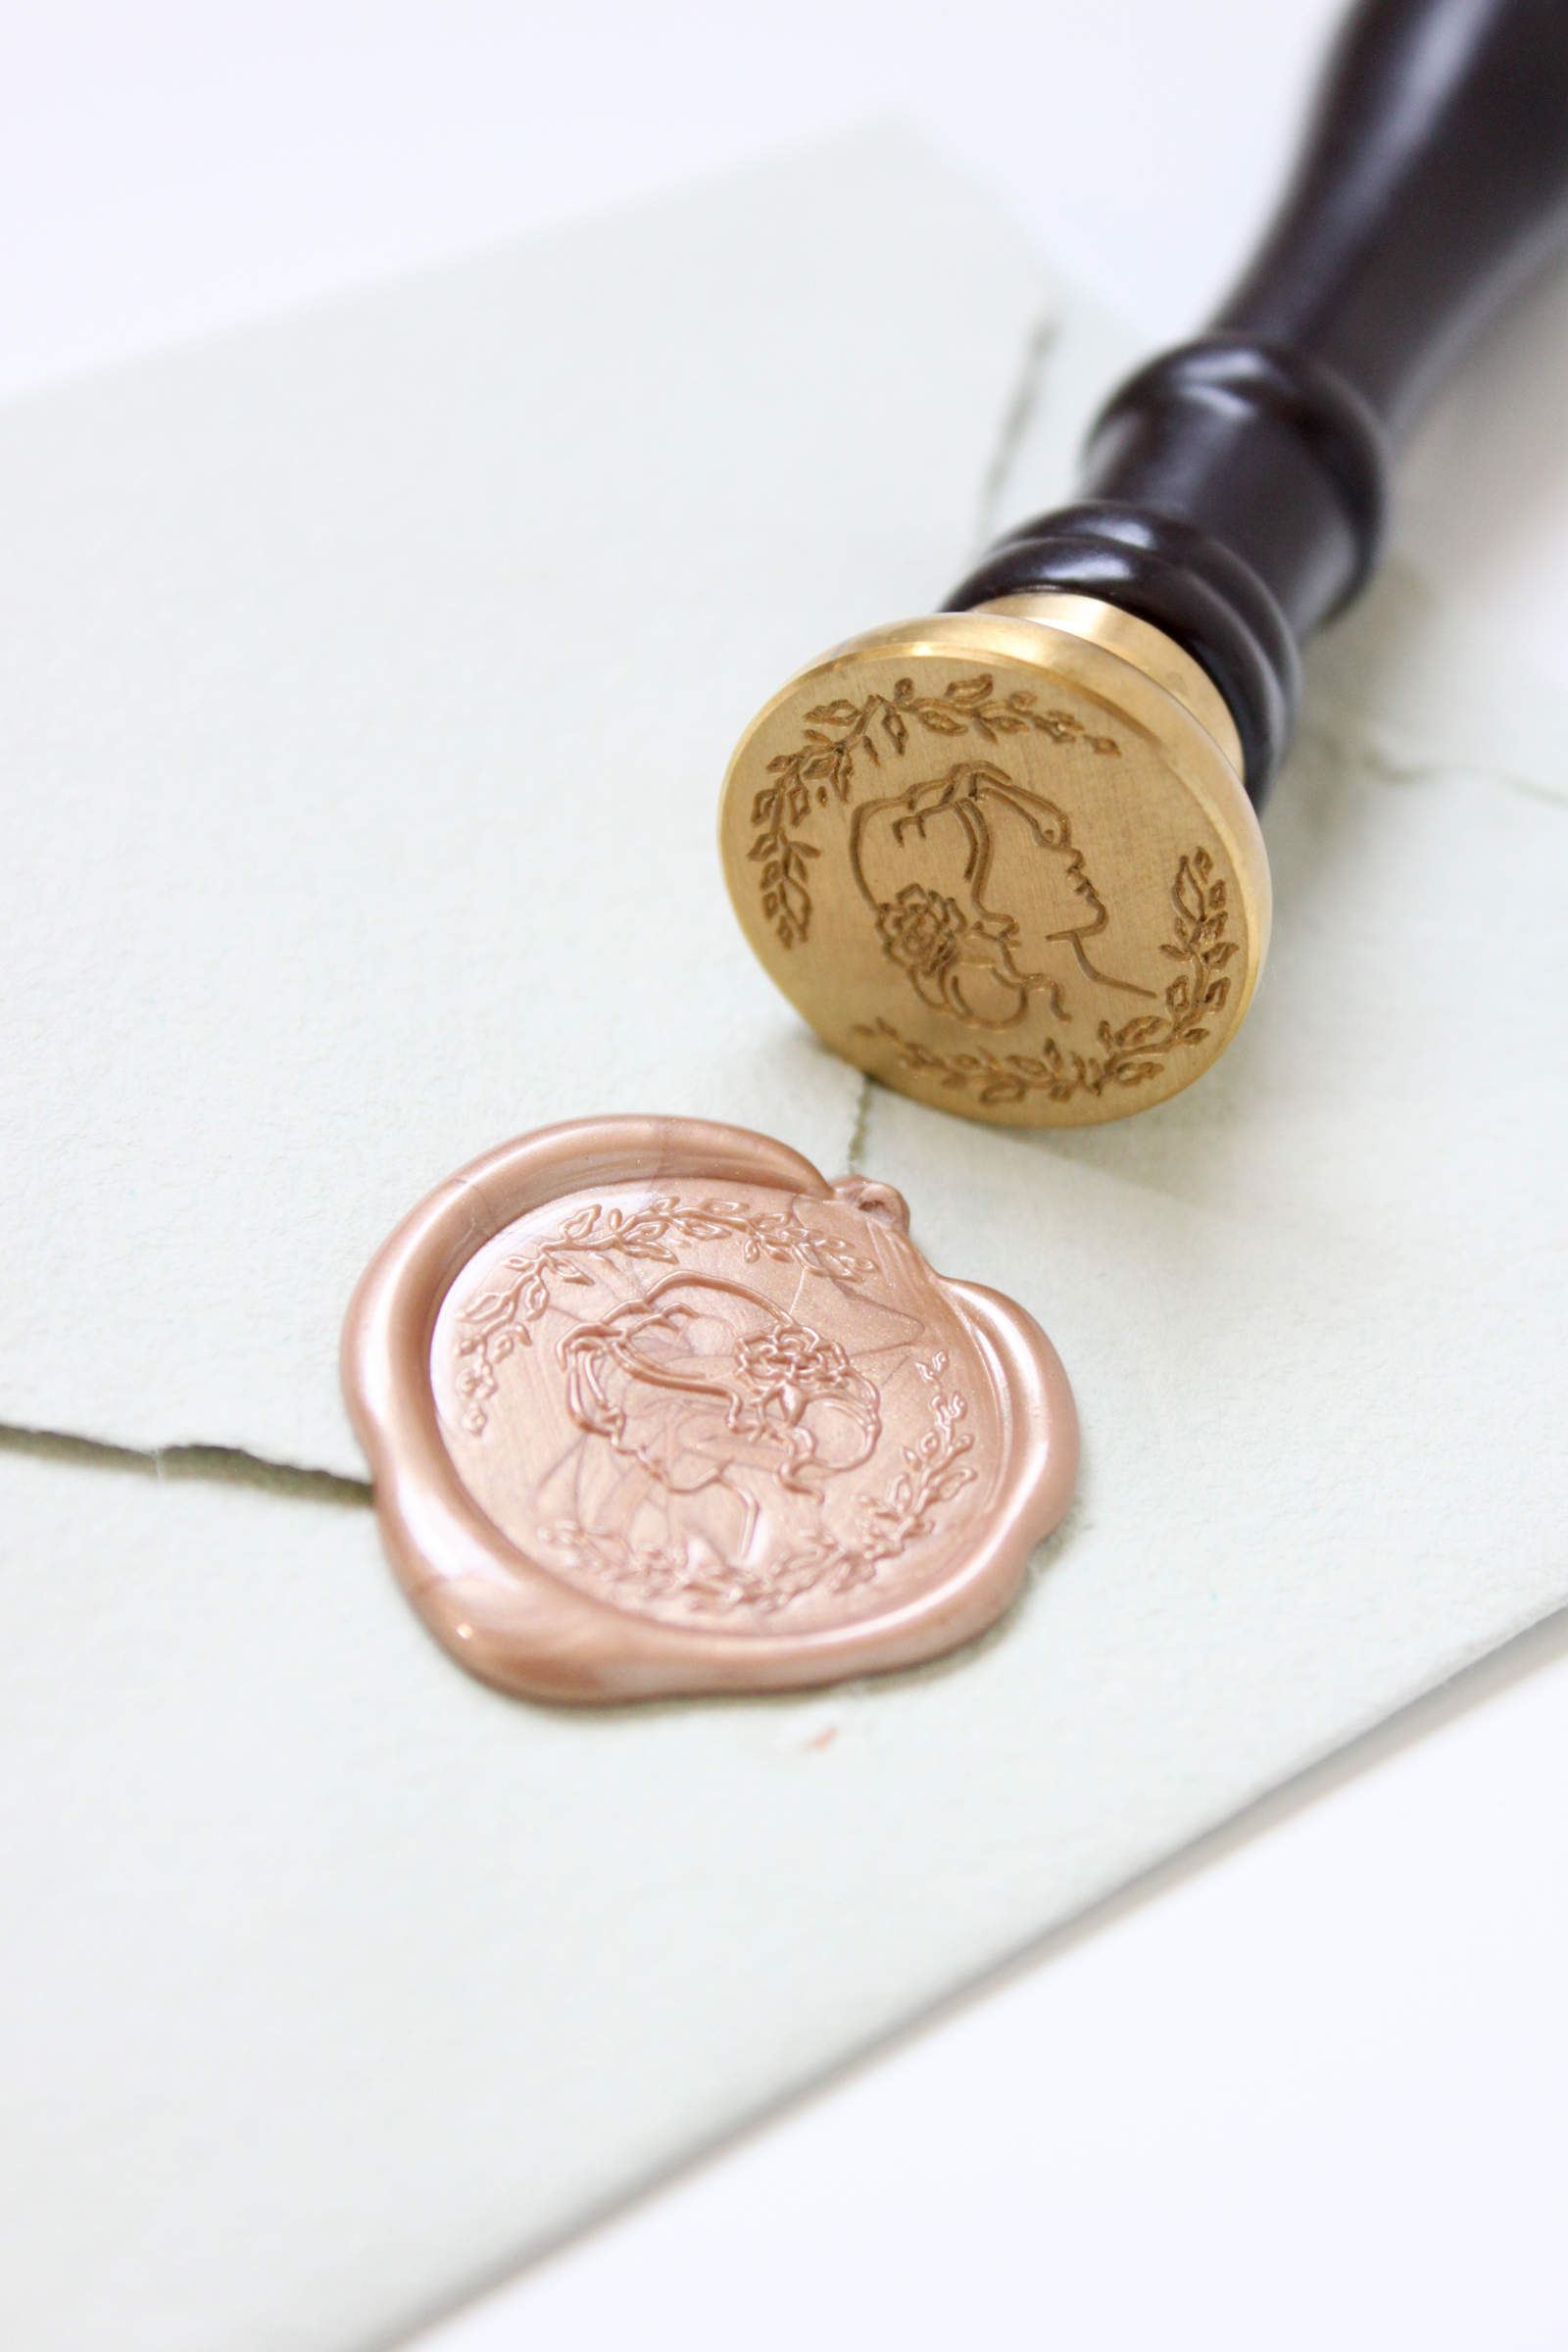 """How to use wax seals.  Stamp wax seals like a pro with these tips from professional fine art stationer, Katrina Crouch! Rose gold wax featuring the """"Blushed Bride"""" seal exclusively at Artisaire.com 